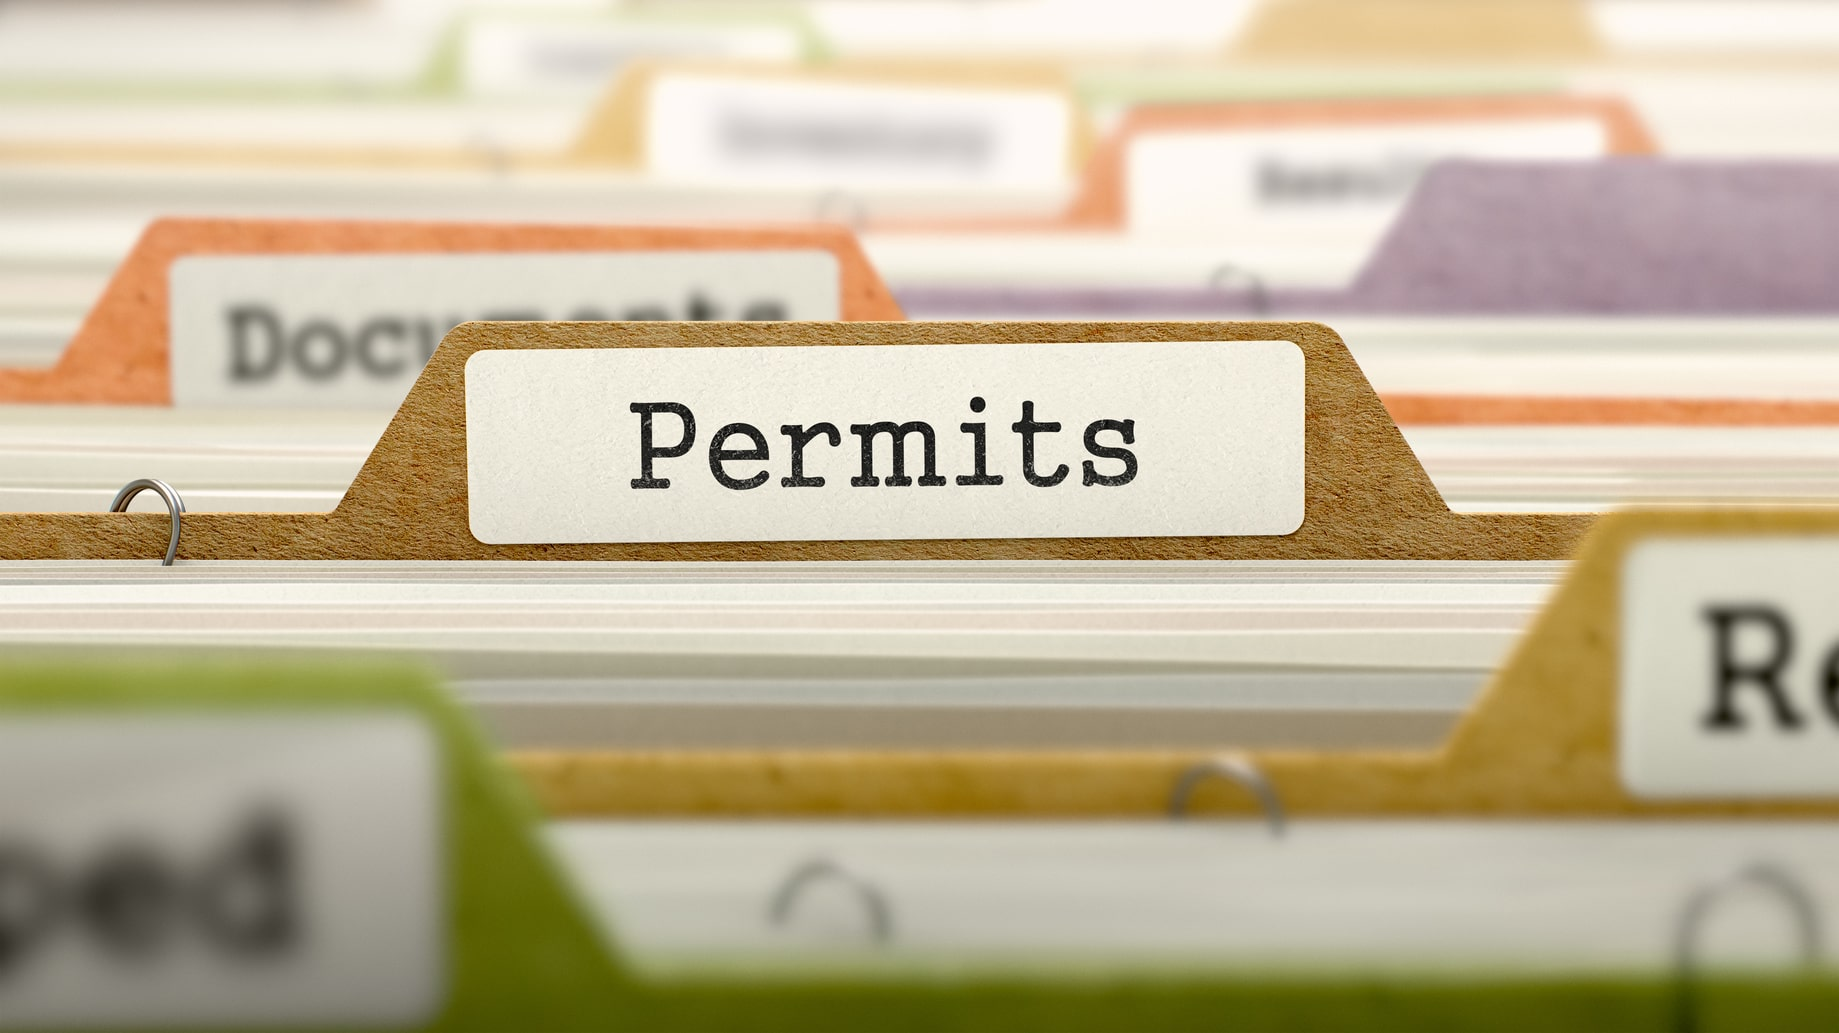 Permits Concept on Folder Register.